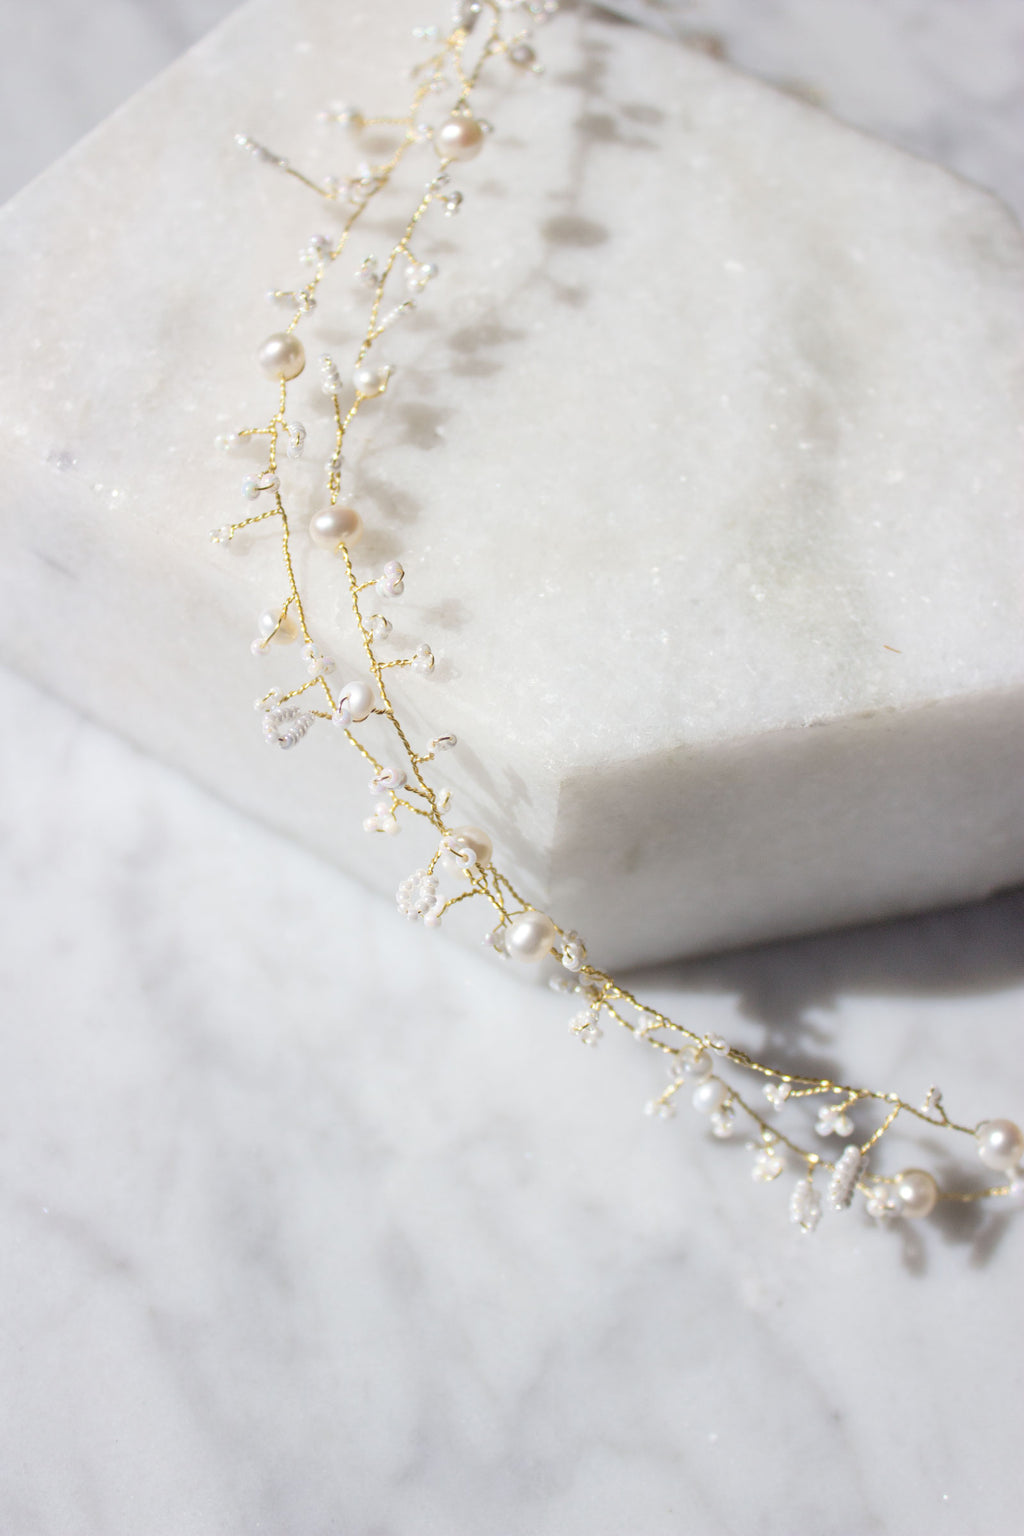 Breathless Extra Long Hair Vine - Christine Elizabeth Jewelry